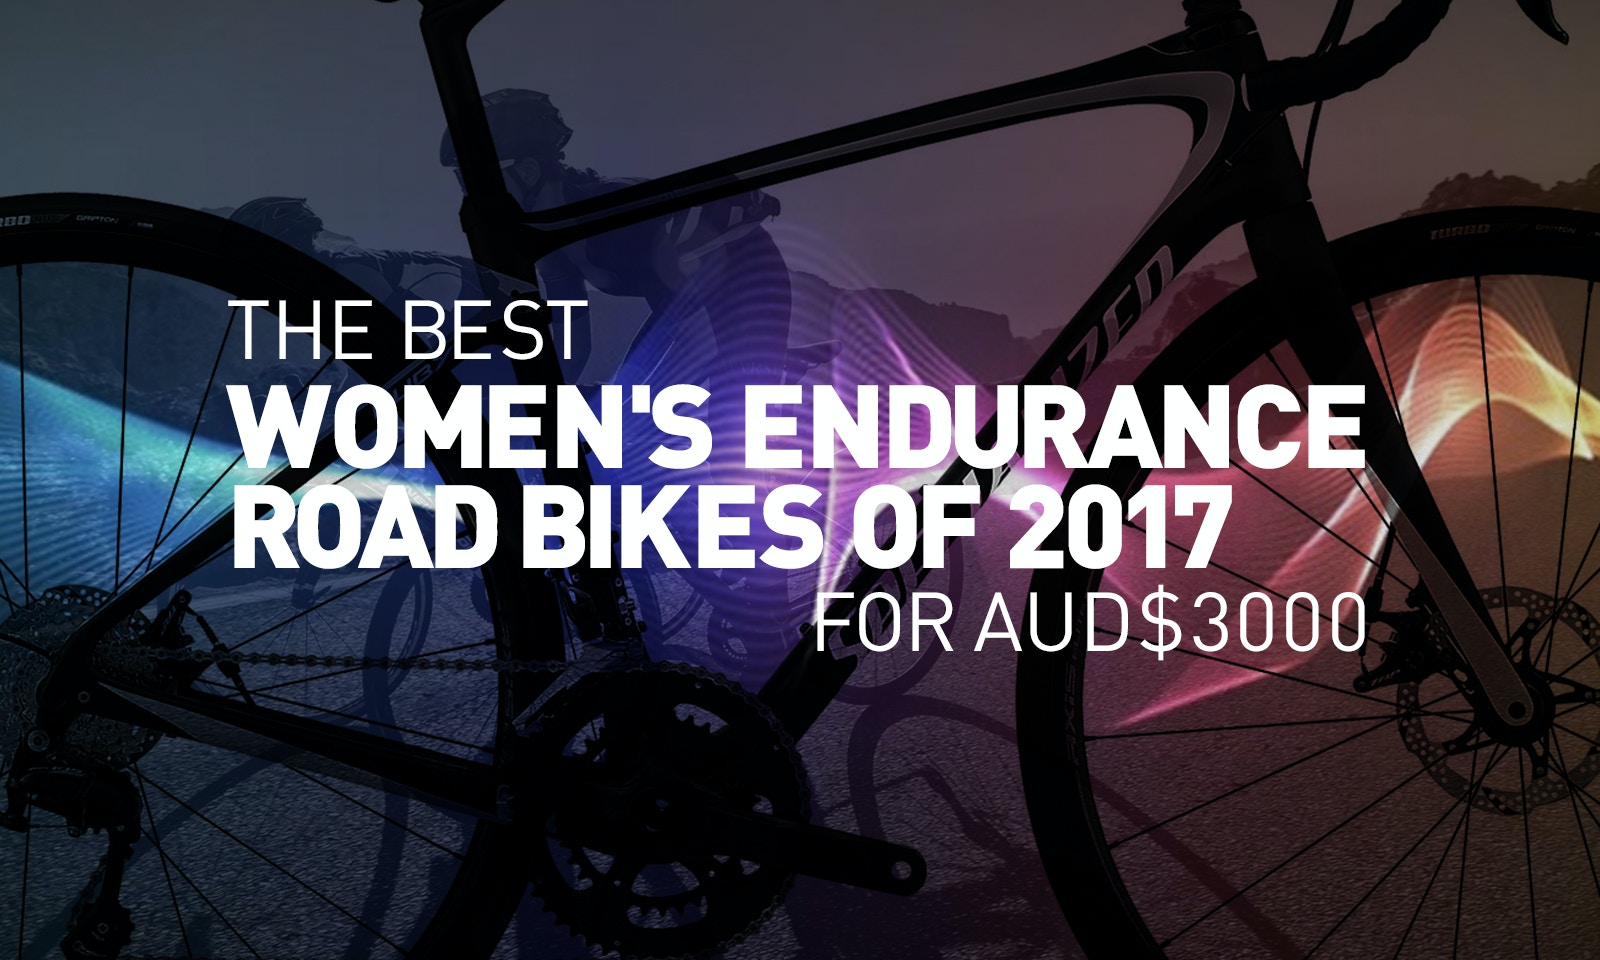 Best Women's Endurance Road Bikes of 2017 for AUD$3,000